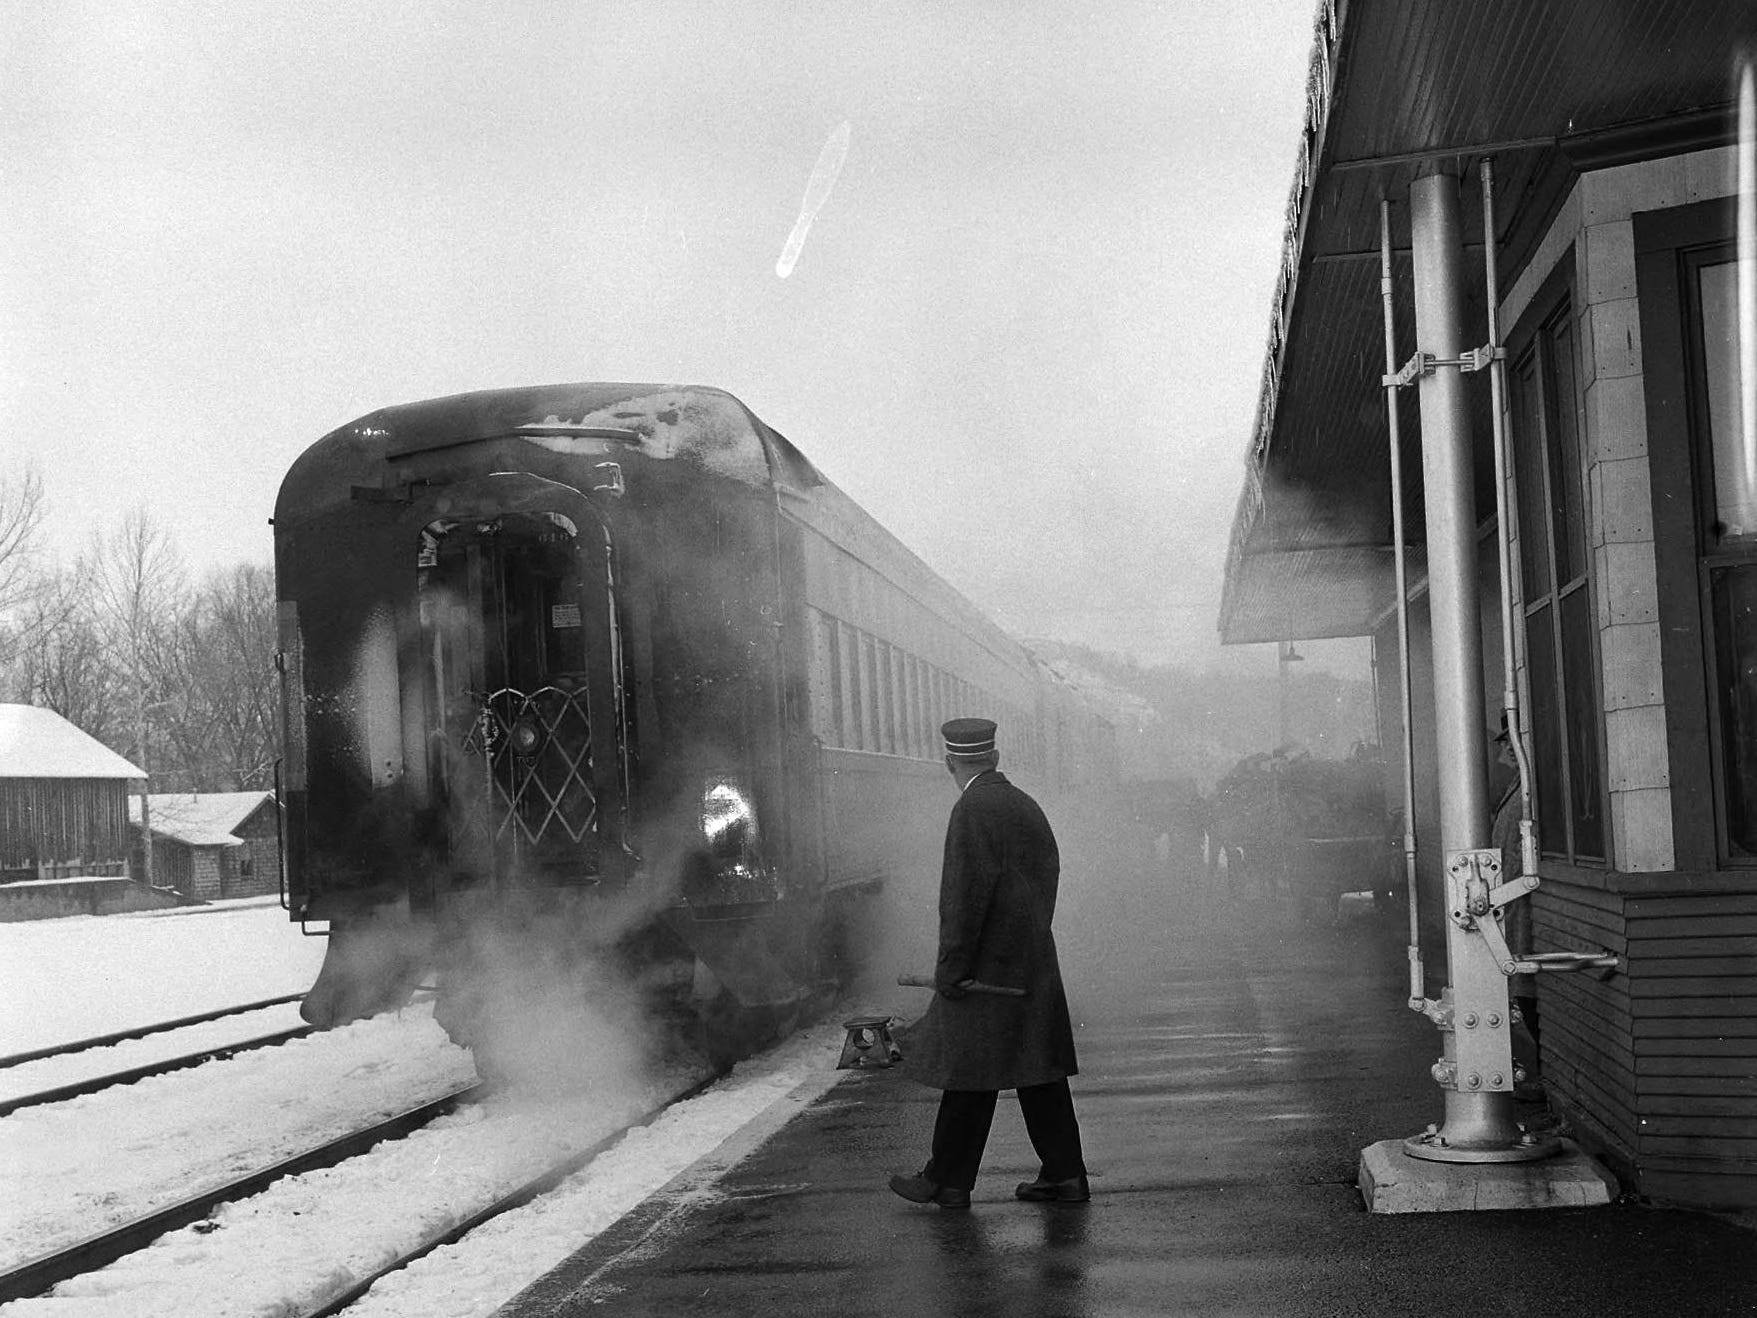 After more than half a century of service, the passenger trains of the Missouri Pacific Railroad on the White River Division closed in March of 1960. A man is pictured on the platform. Published in the News & Leader on March 20, 1960.